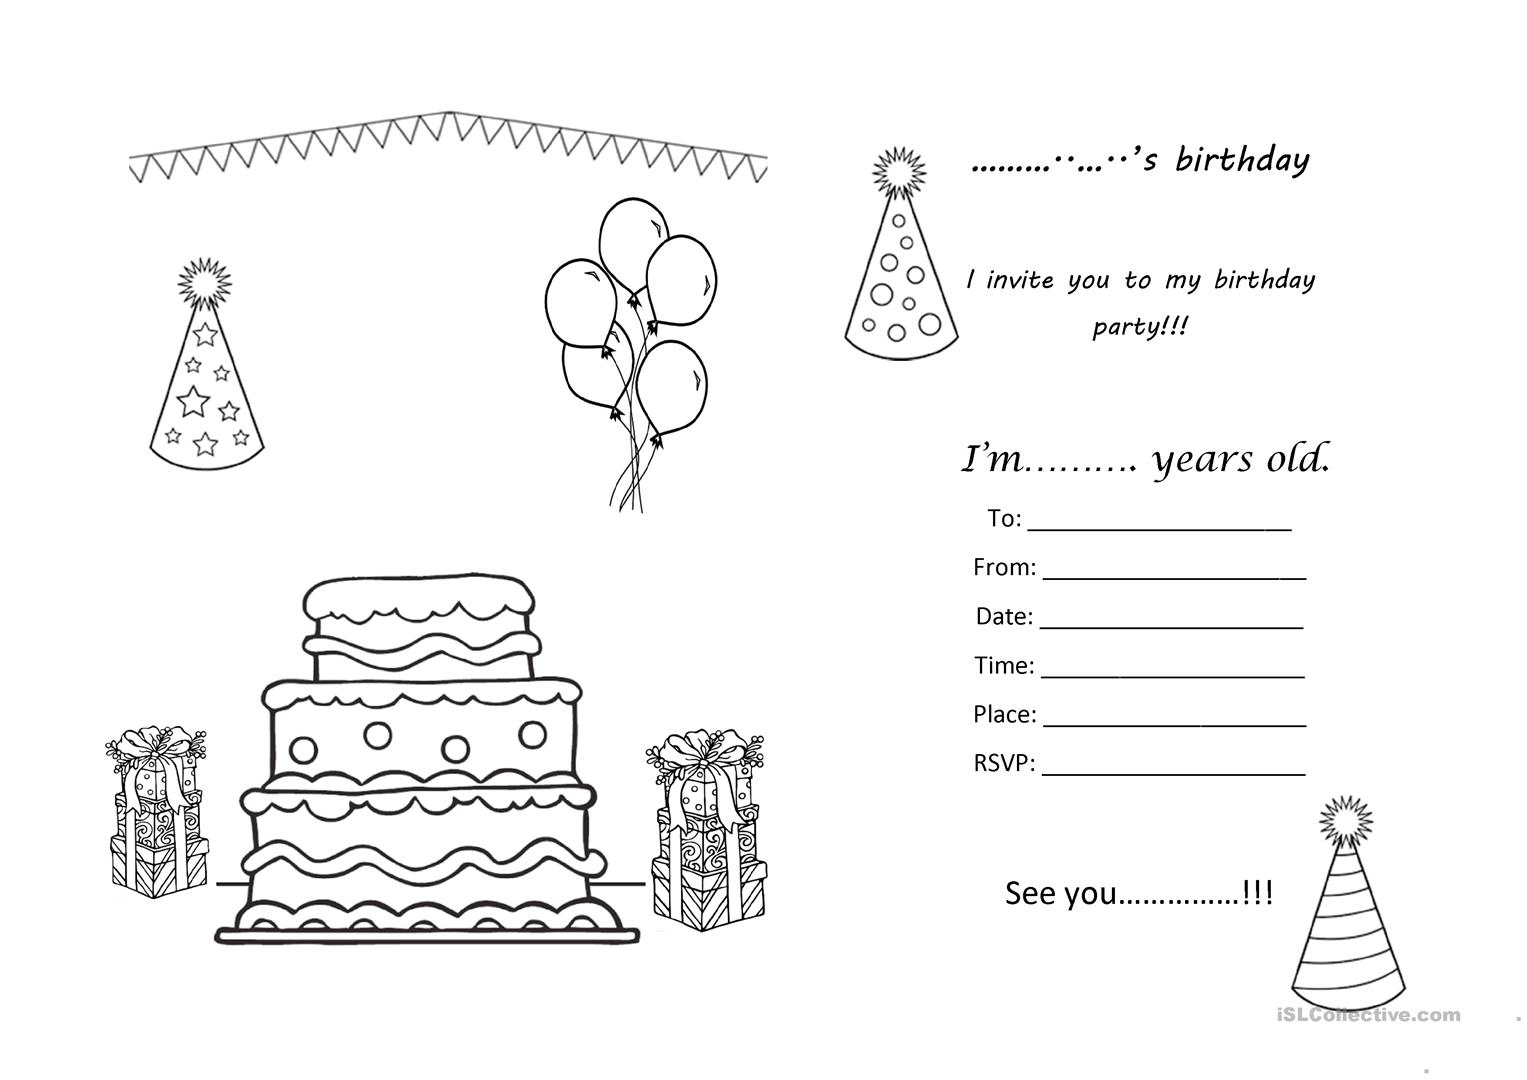 birthday worksheet for esl beginners printable worksheets and activities for teachers parents. Black Bedroom Furniture Sets. Home Design Ideas